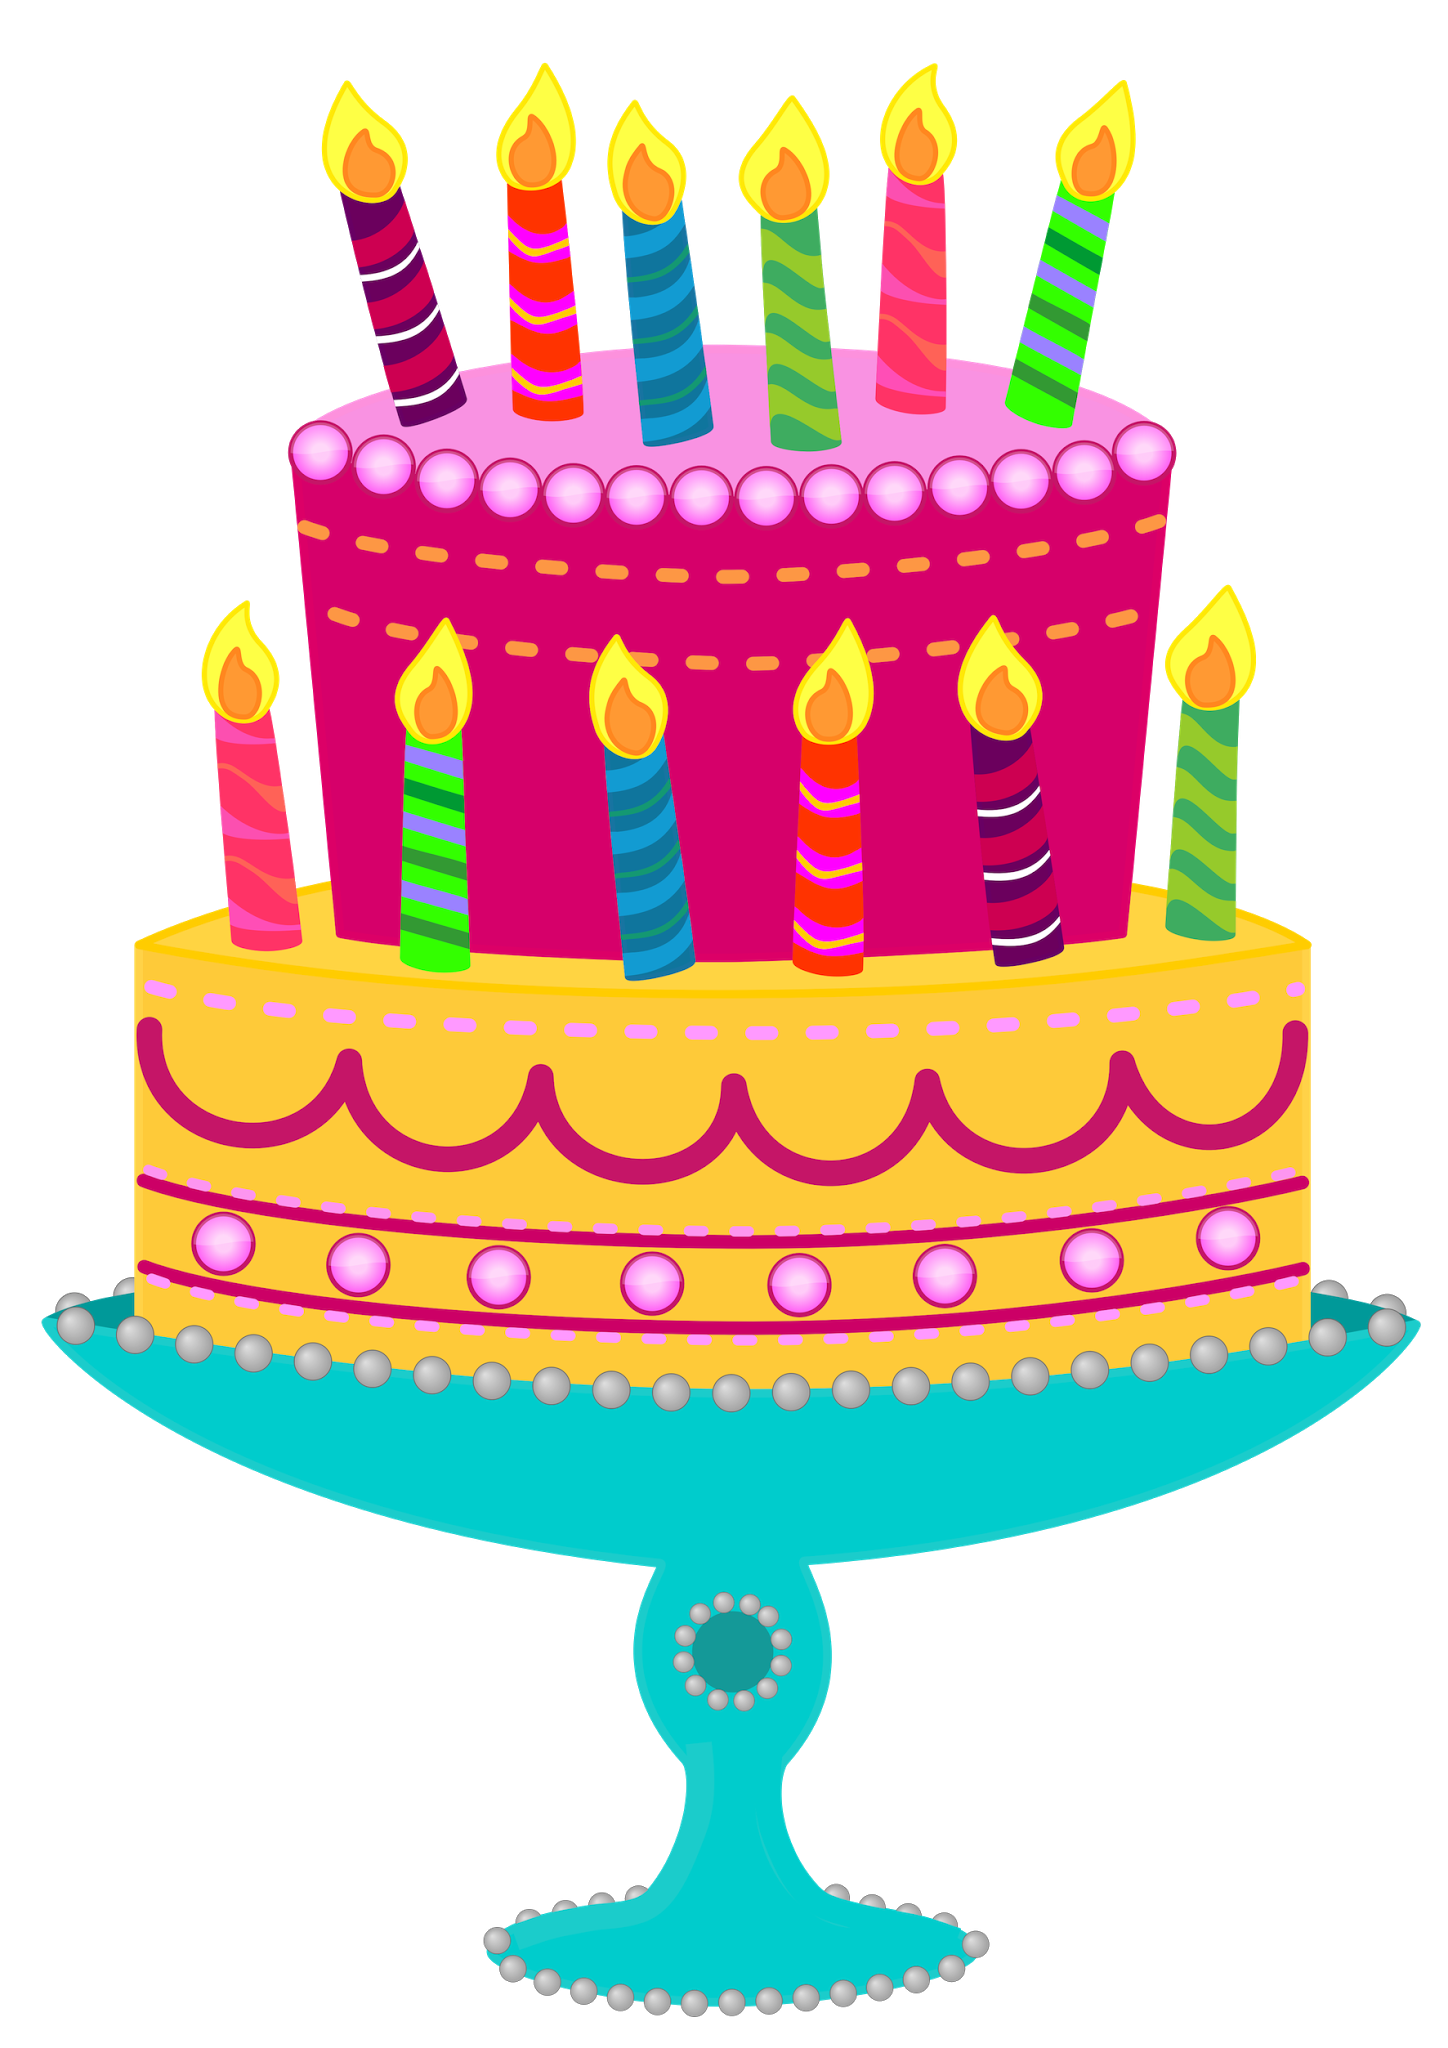 Free Cake Images - Cliparts.co Paper Images Pinterest ...